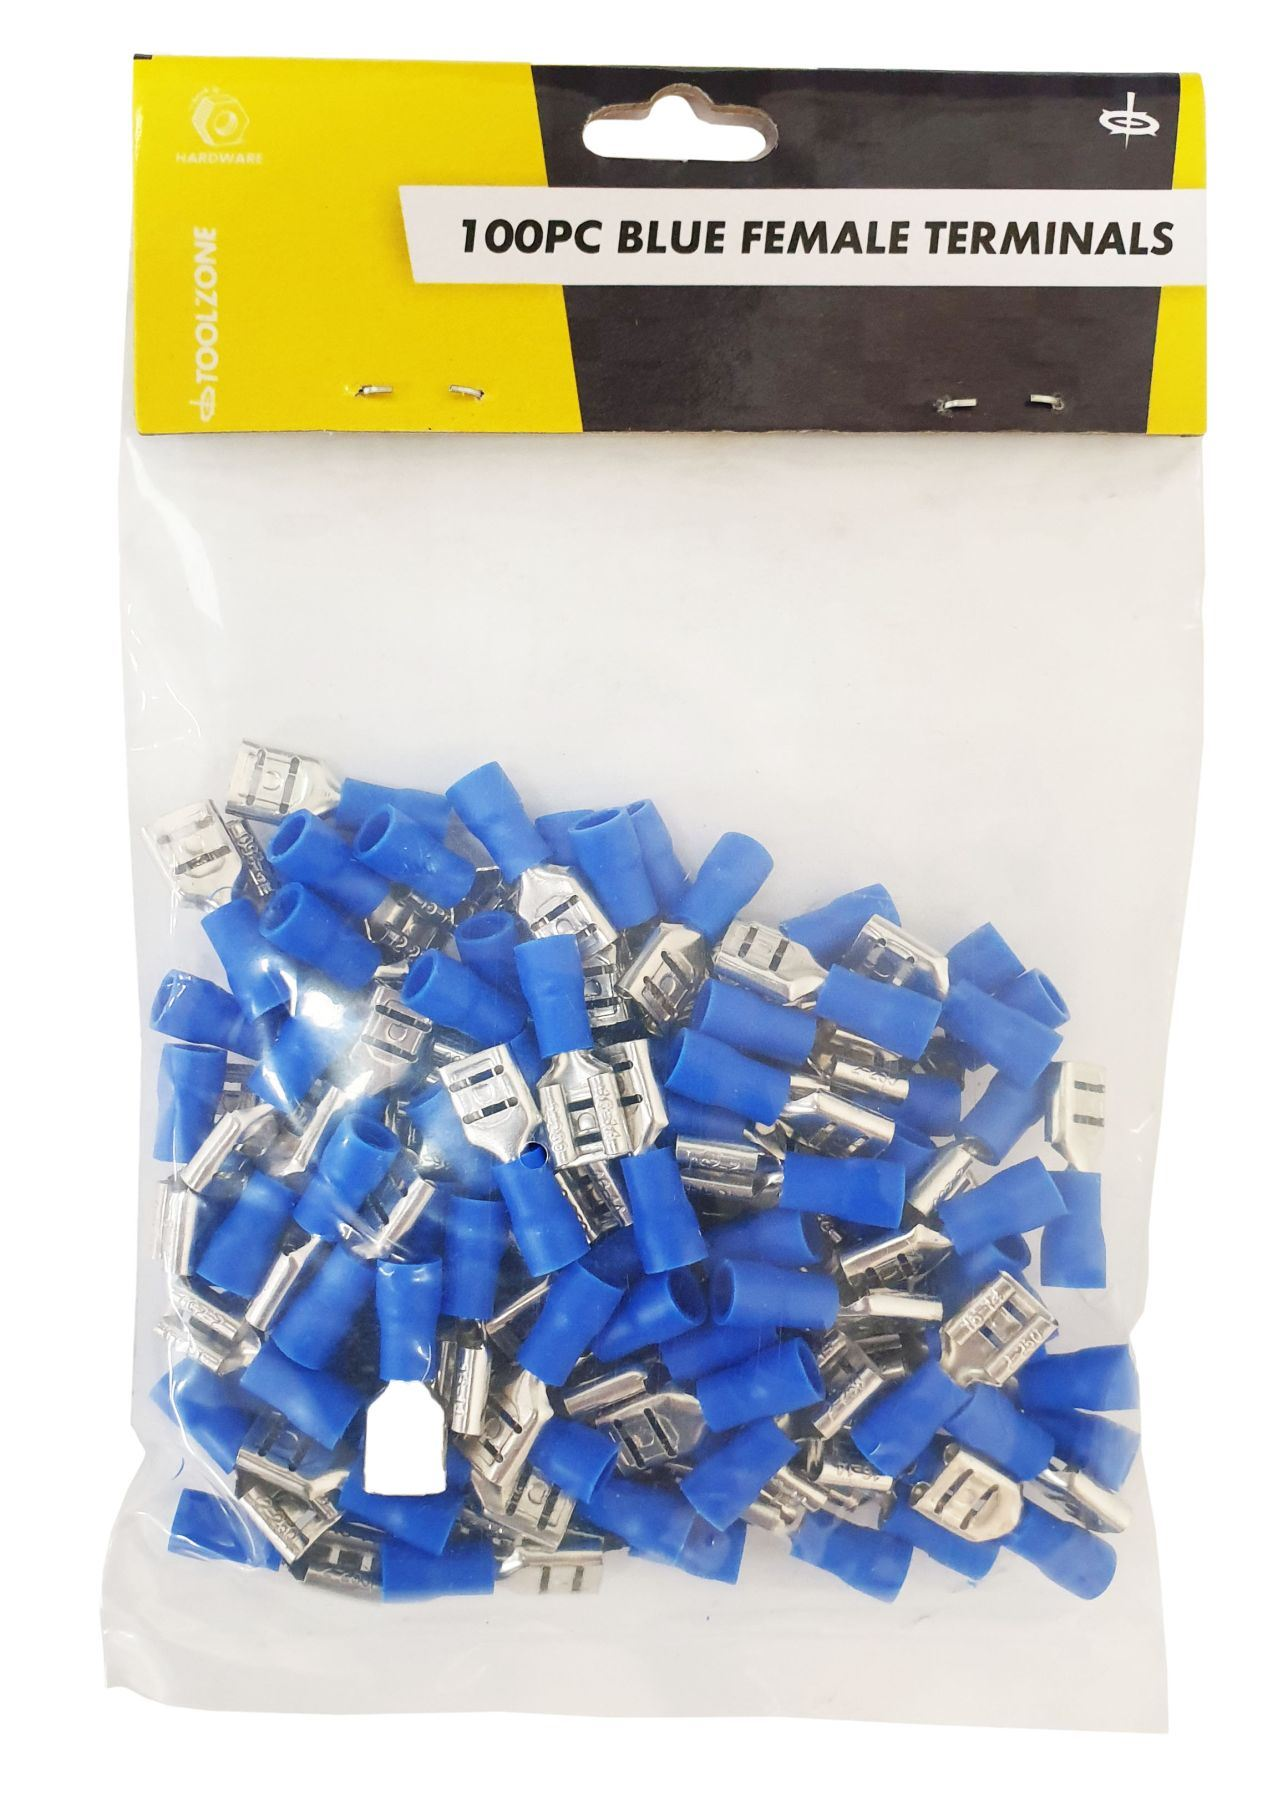 Toolzone 100Pc Blue Female Terminals